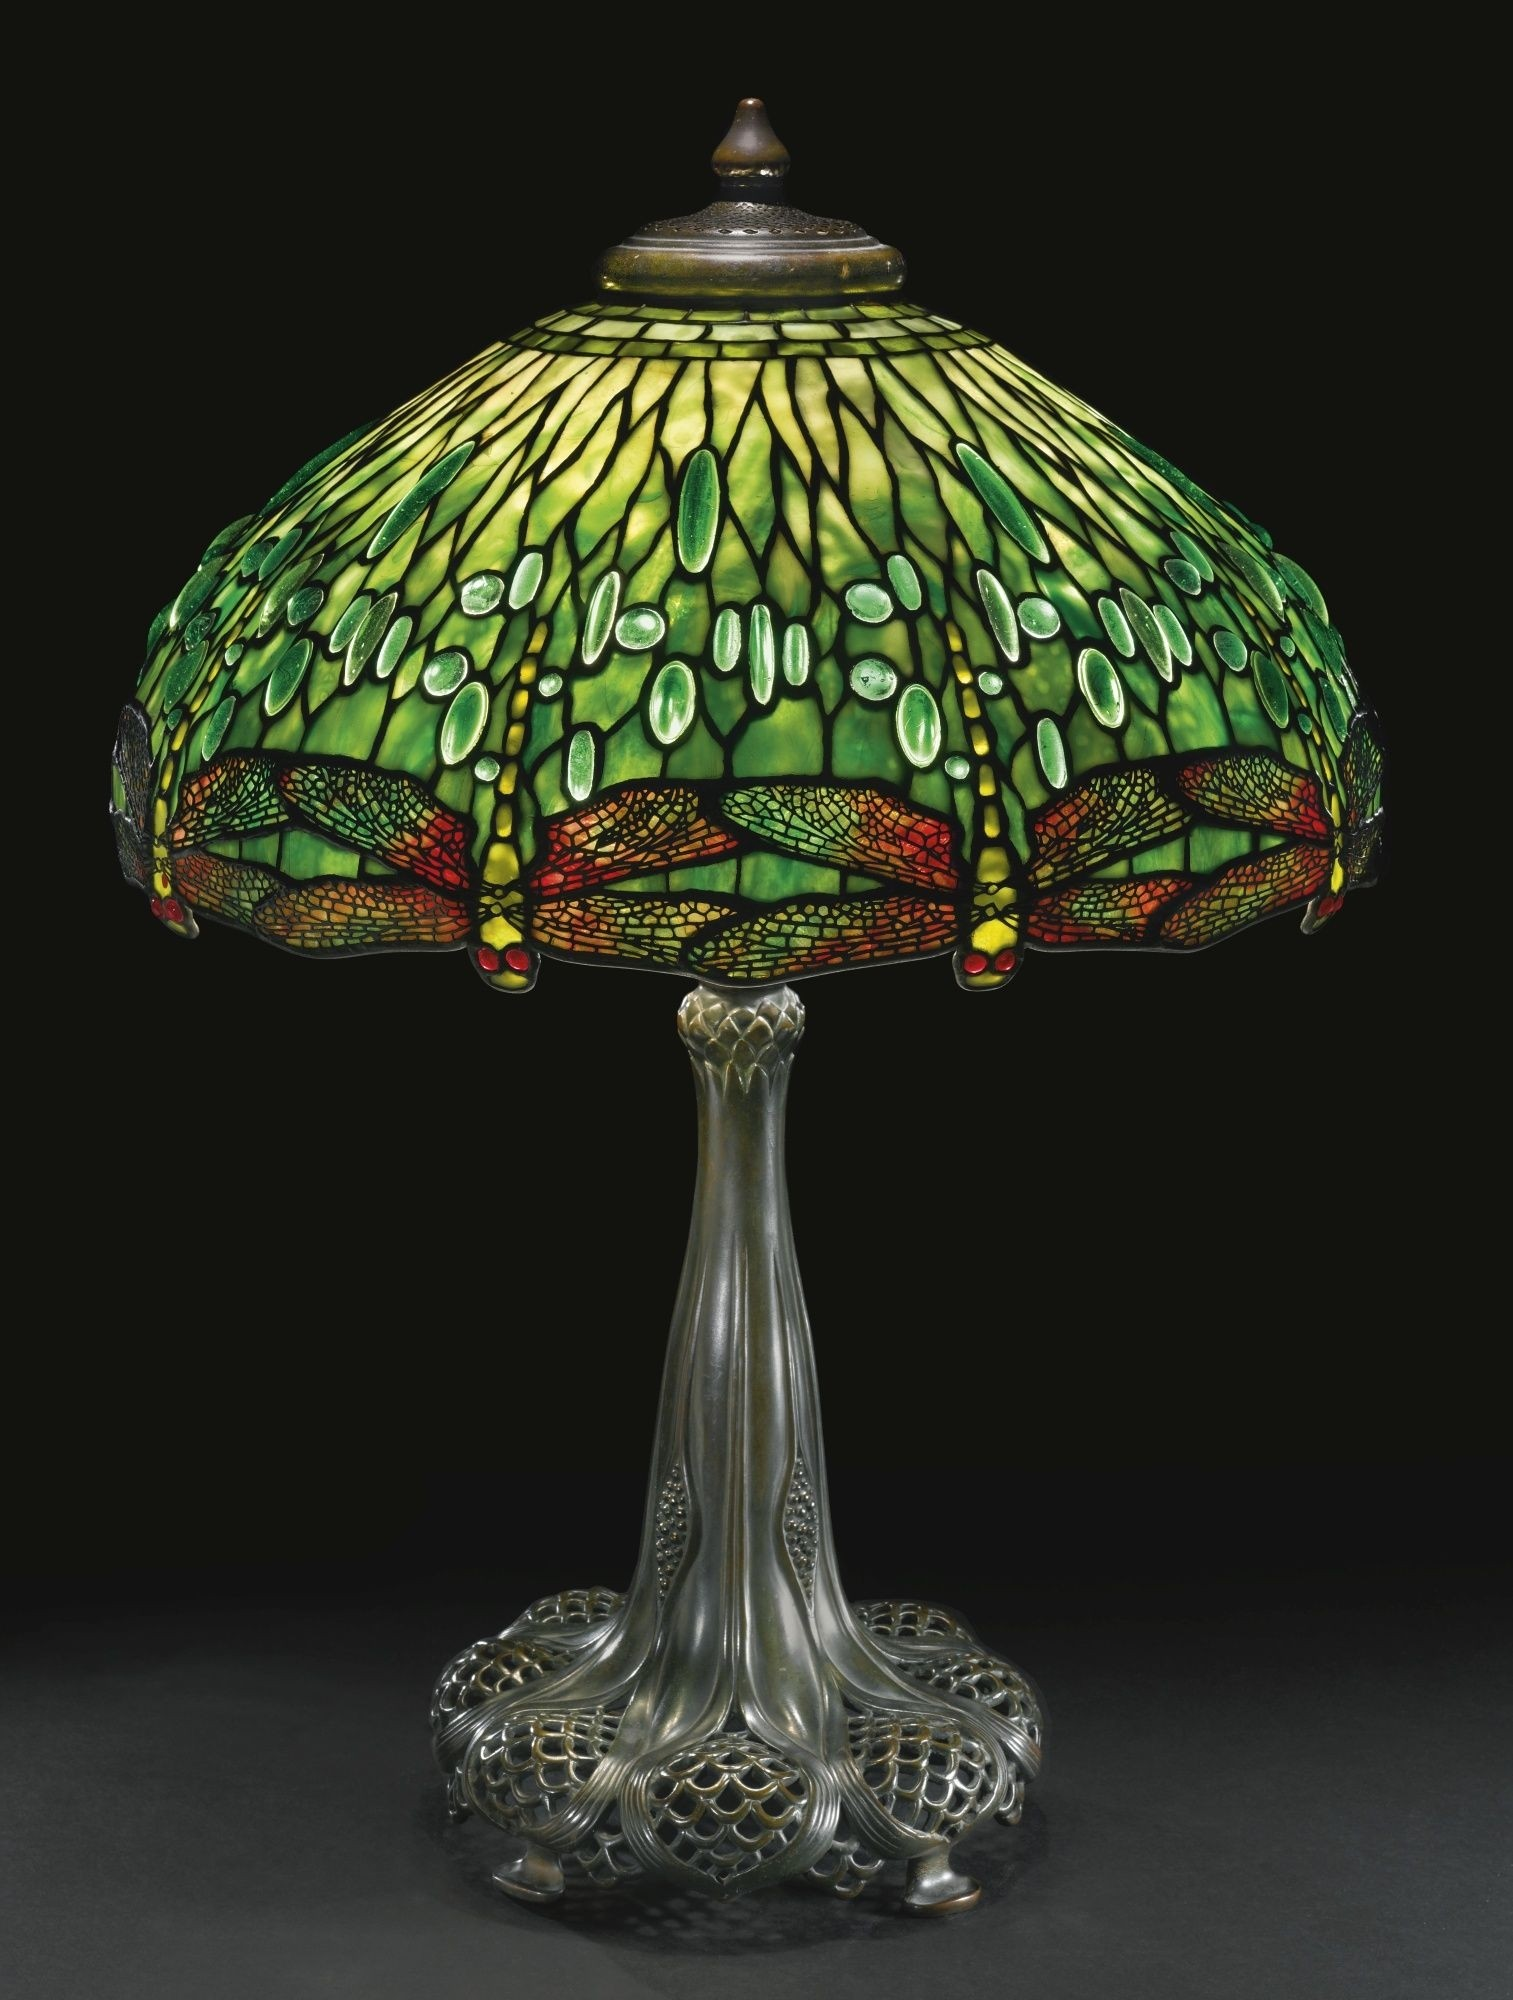 Antiques Beautiful Green Tinted Glass Sale Price Antique Furniture Antique Original Glass Lamp Shade